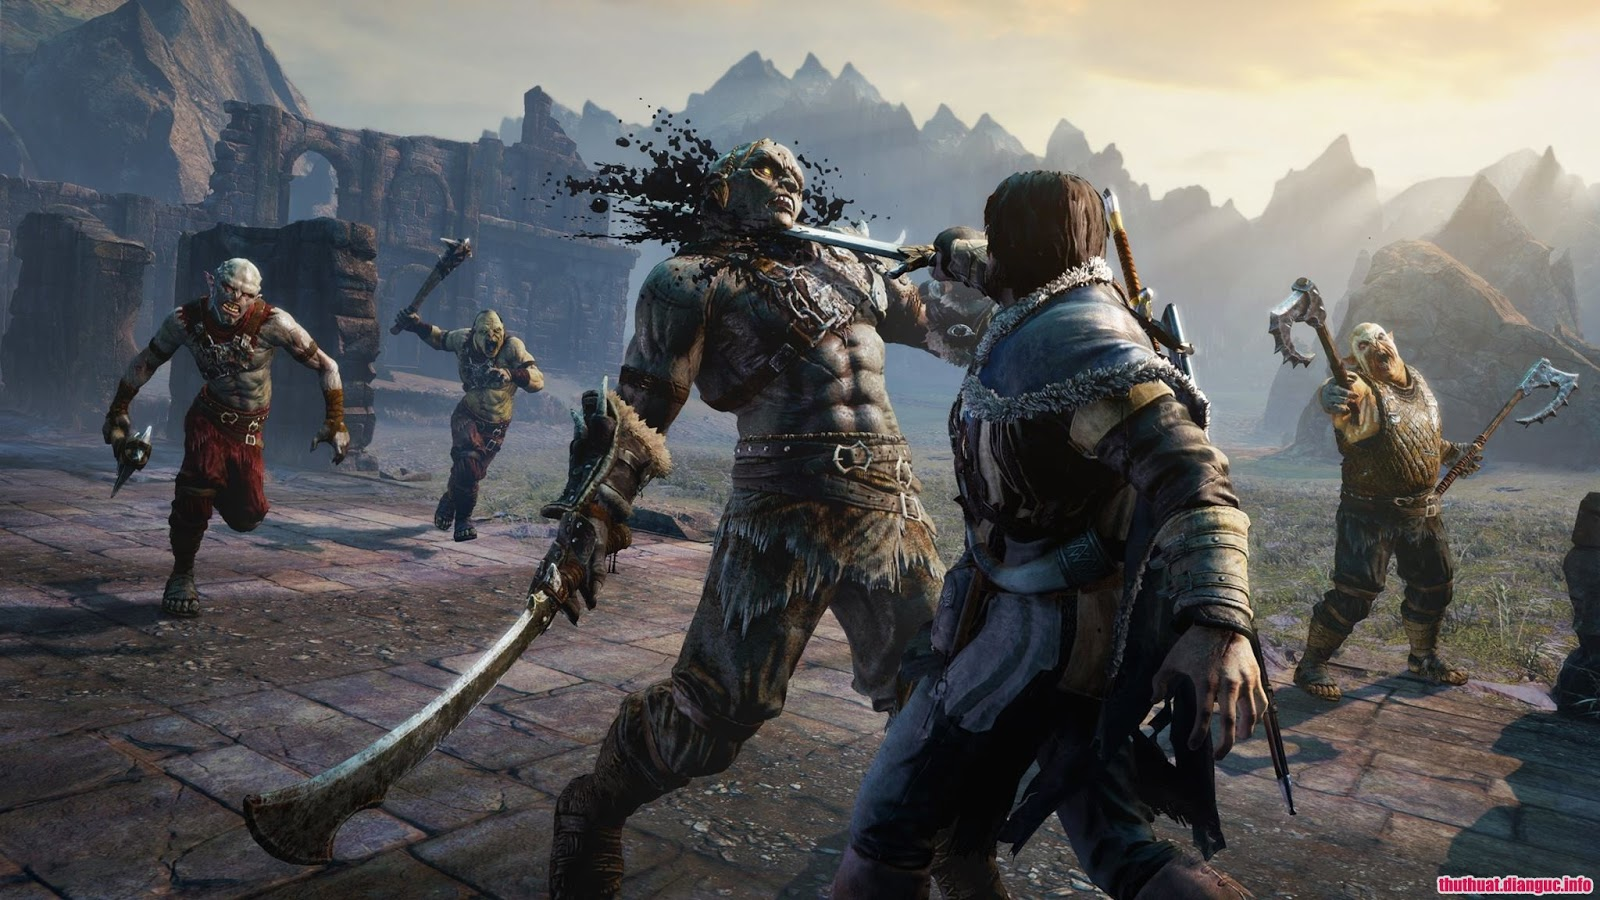 Game Middle Earth: Shadow of Mordor free download